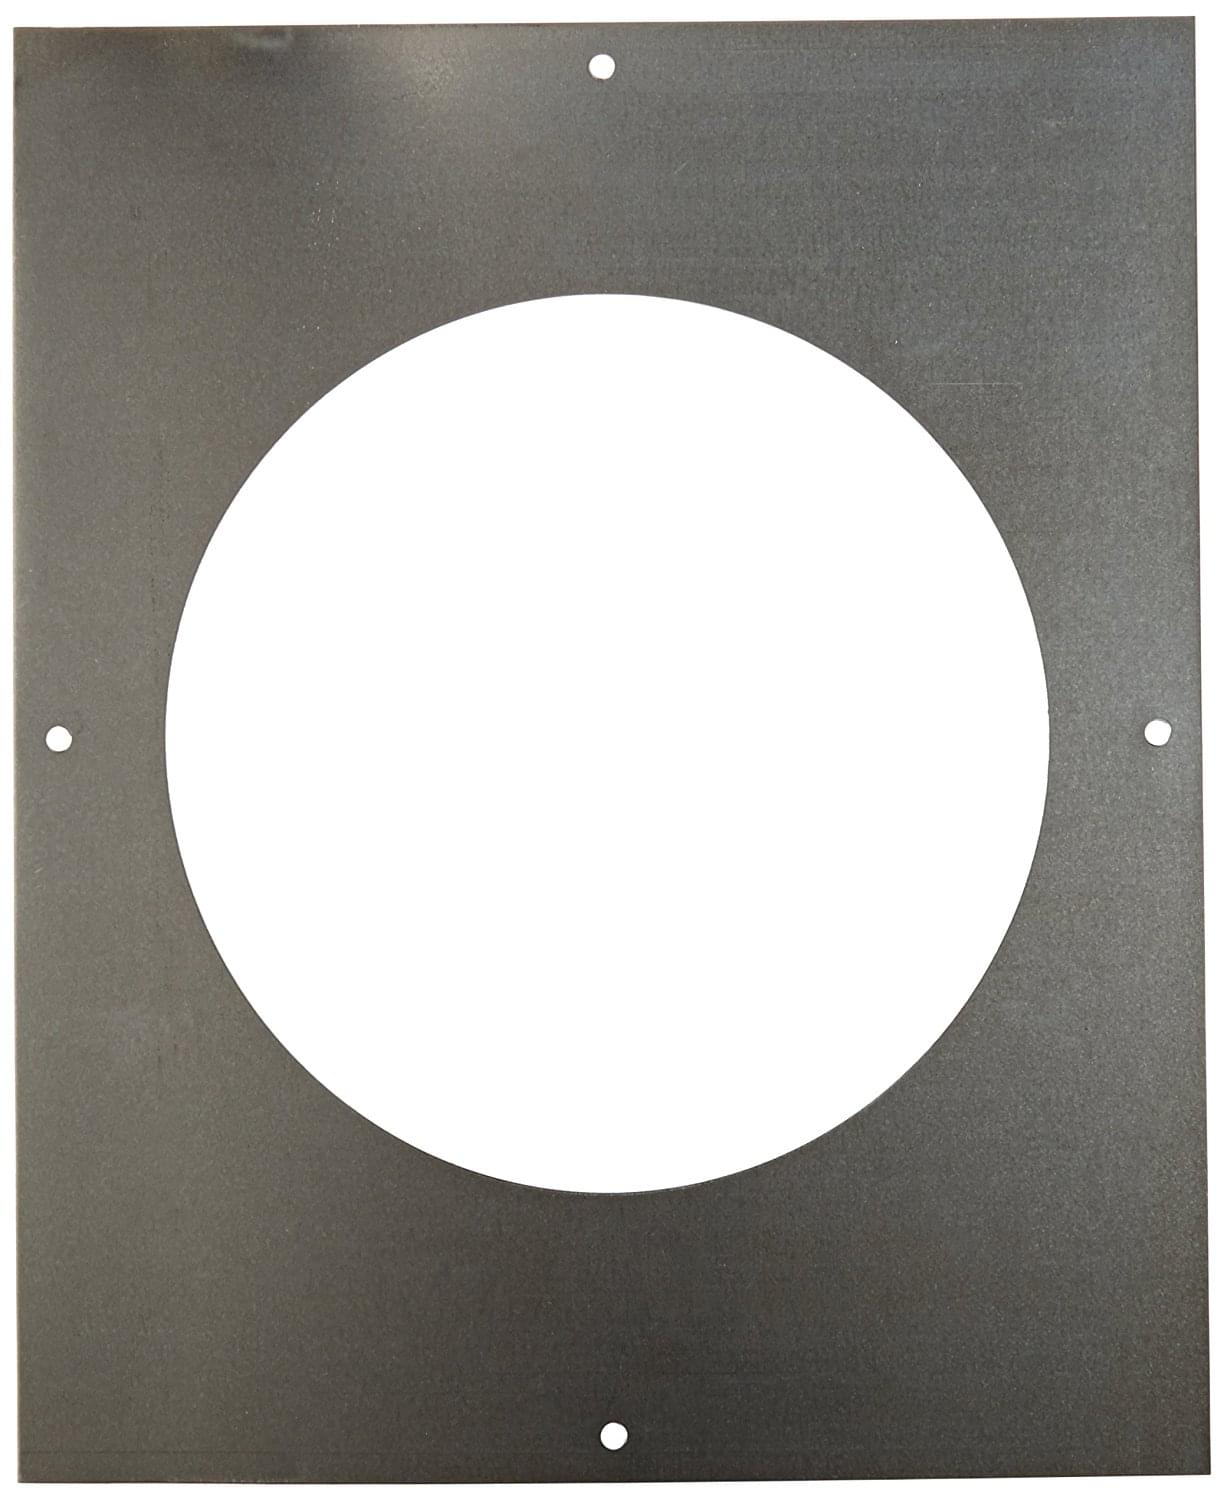 Jandy R0449703 Plate Adapter Drafthood Vent Cap 250